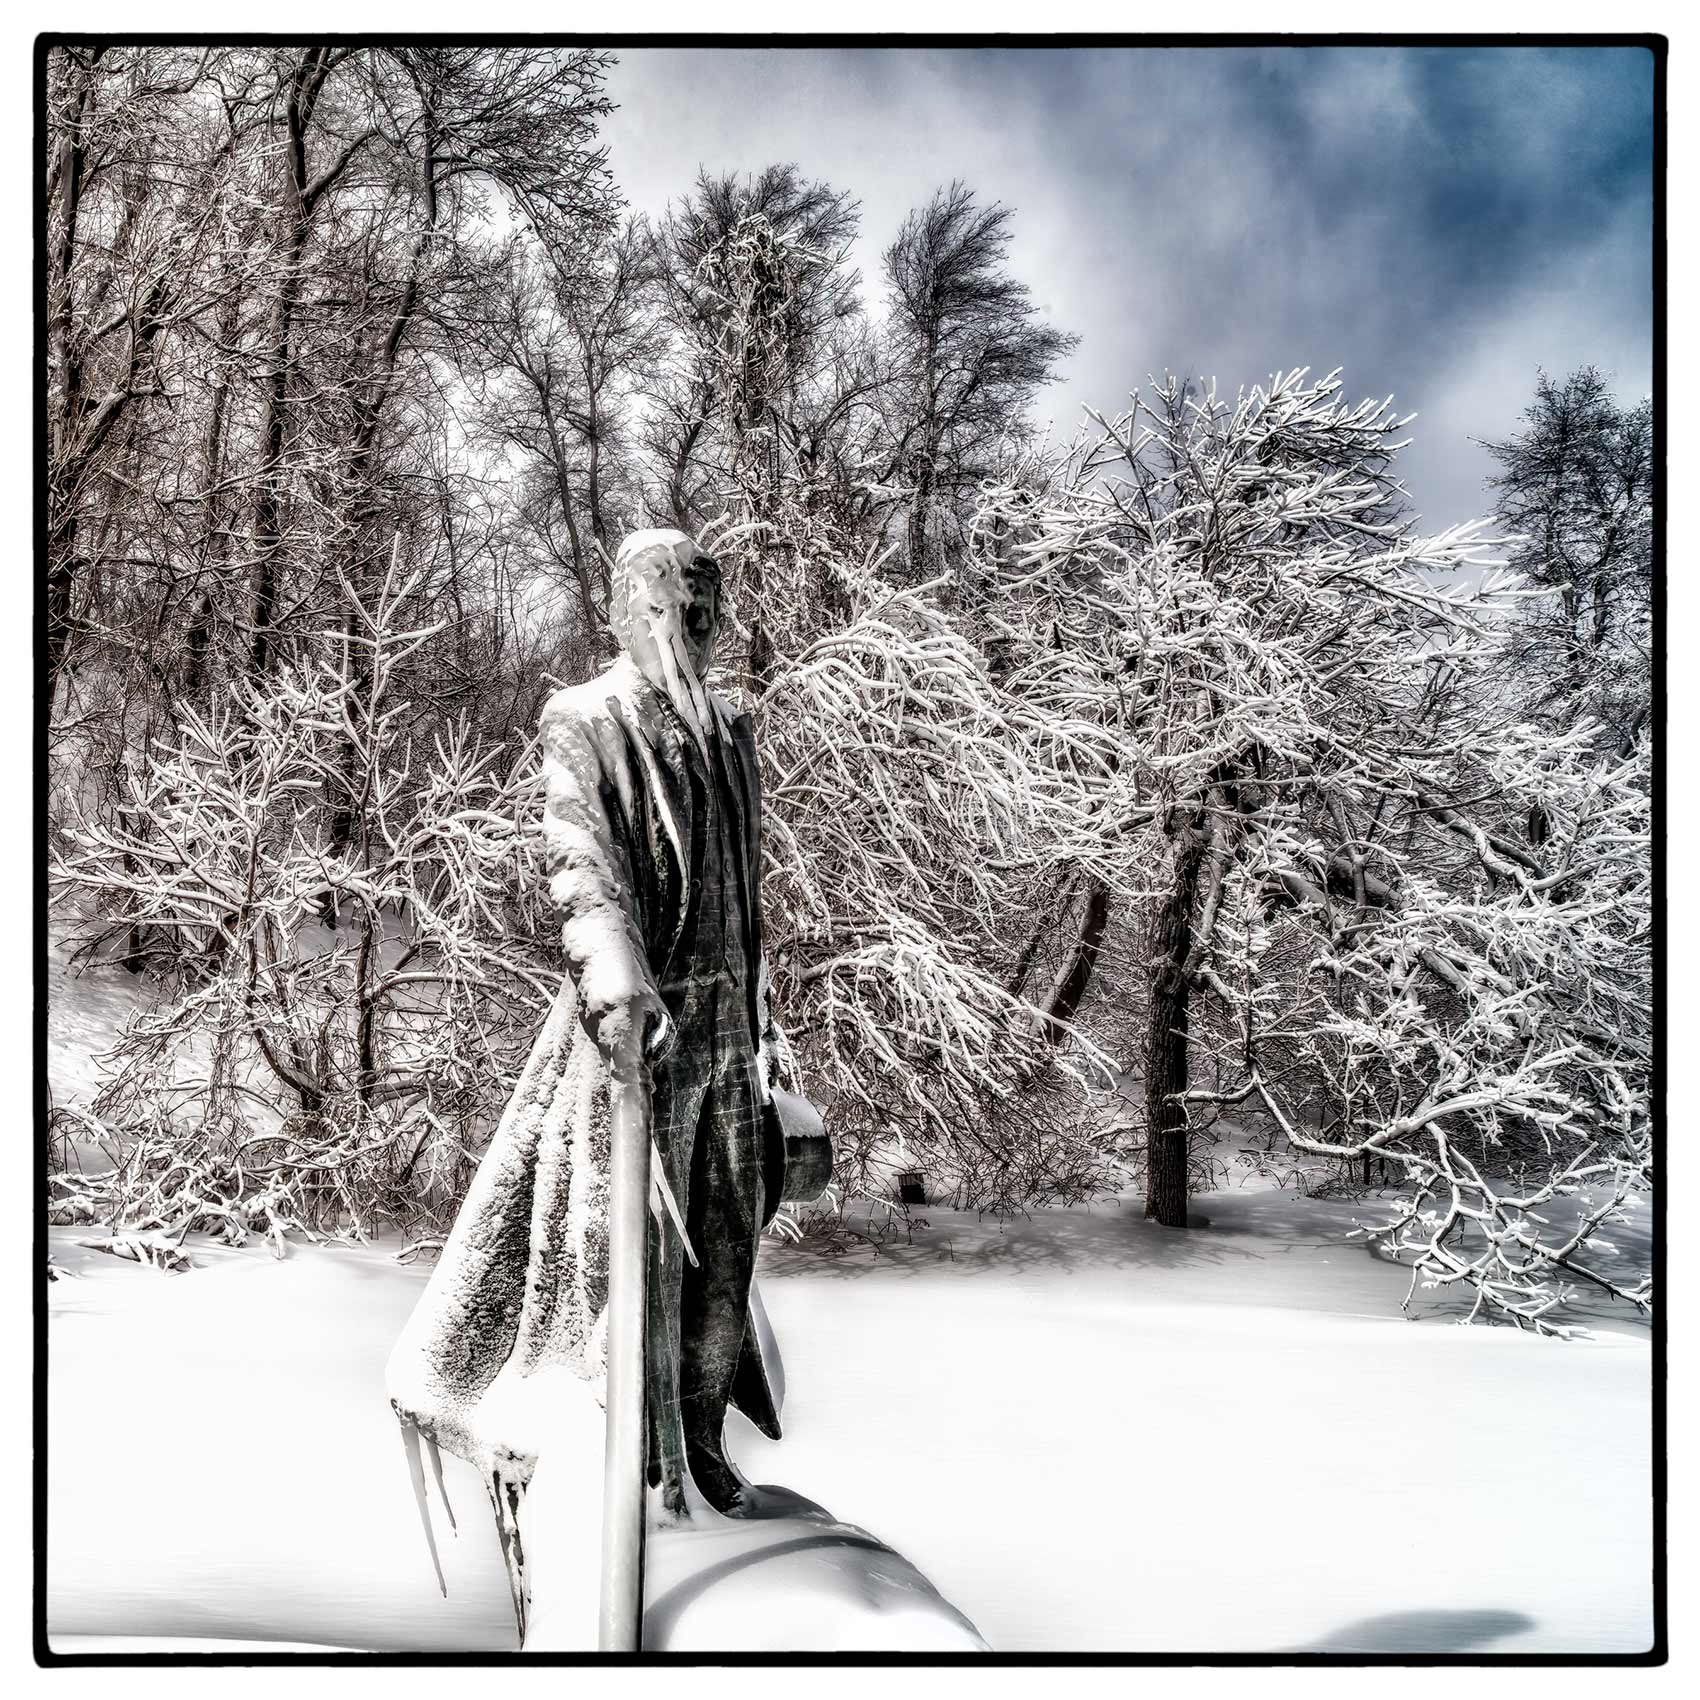 a-statue-of-nikola-tesla-is-covered-in-ice-after-a-storm-in-niagara-falls-ontario